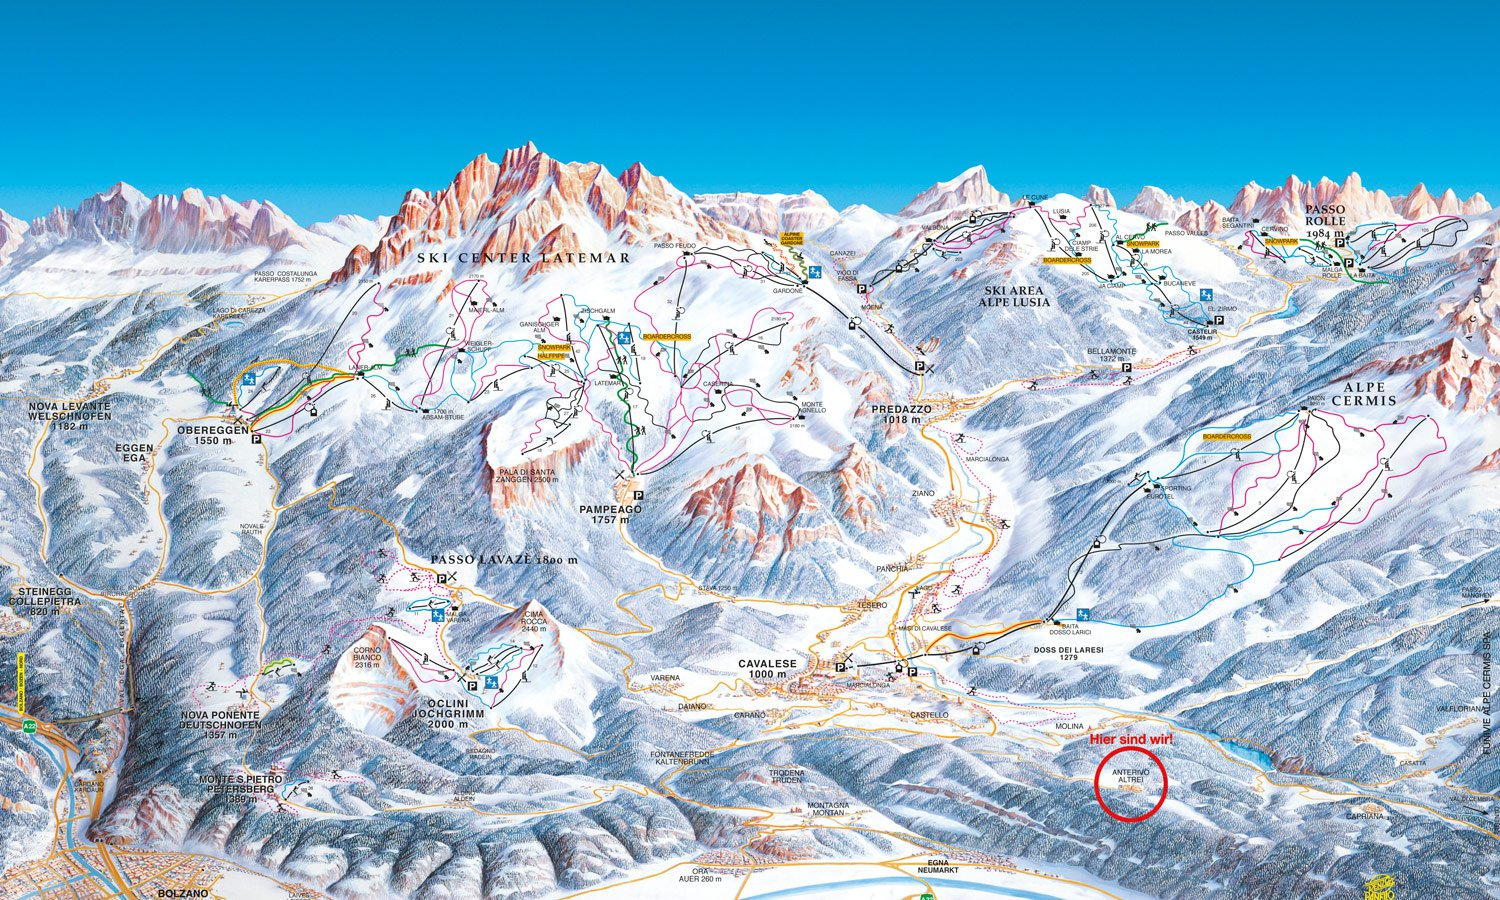 Let us show you the ski resort